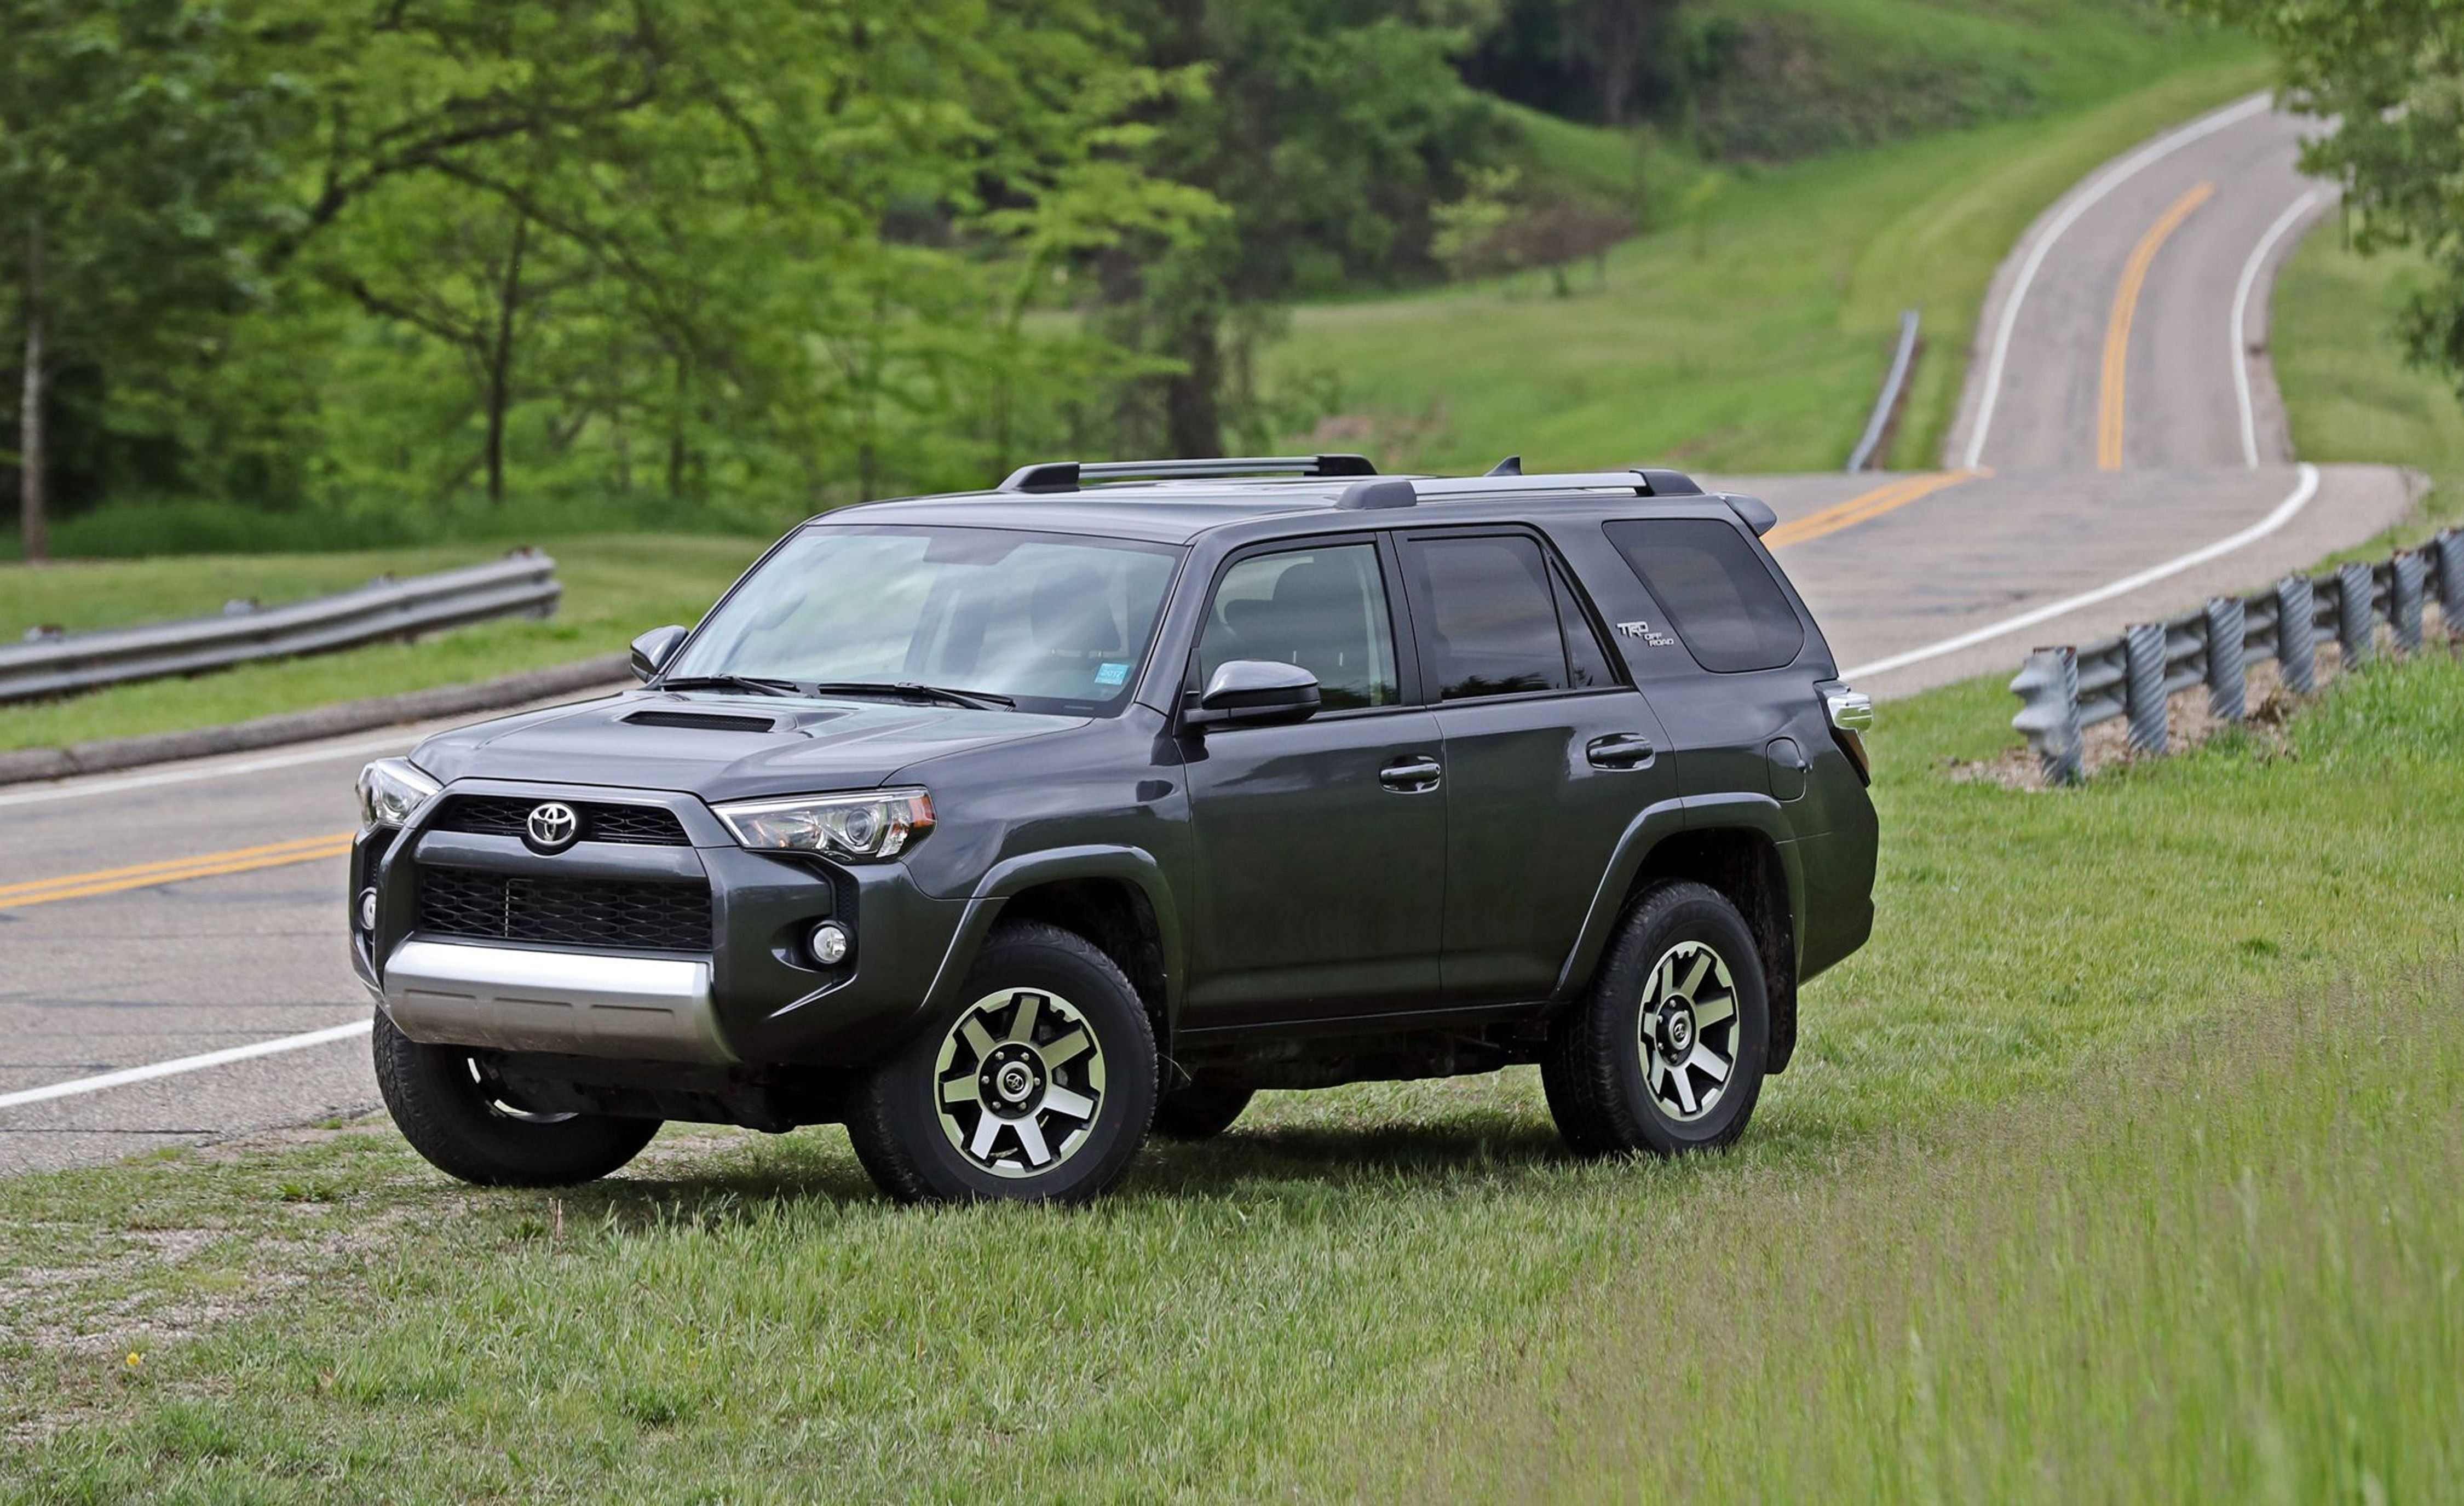 2020 4runner Review.The 2020 Toyota 4runner Concept And Review Upcoming Cars